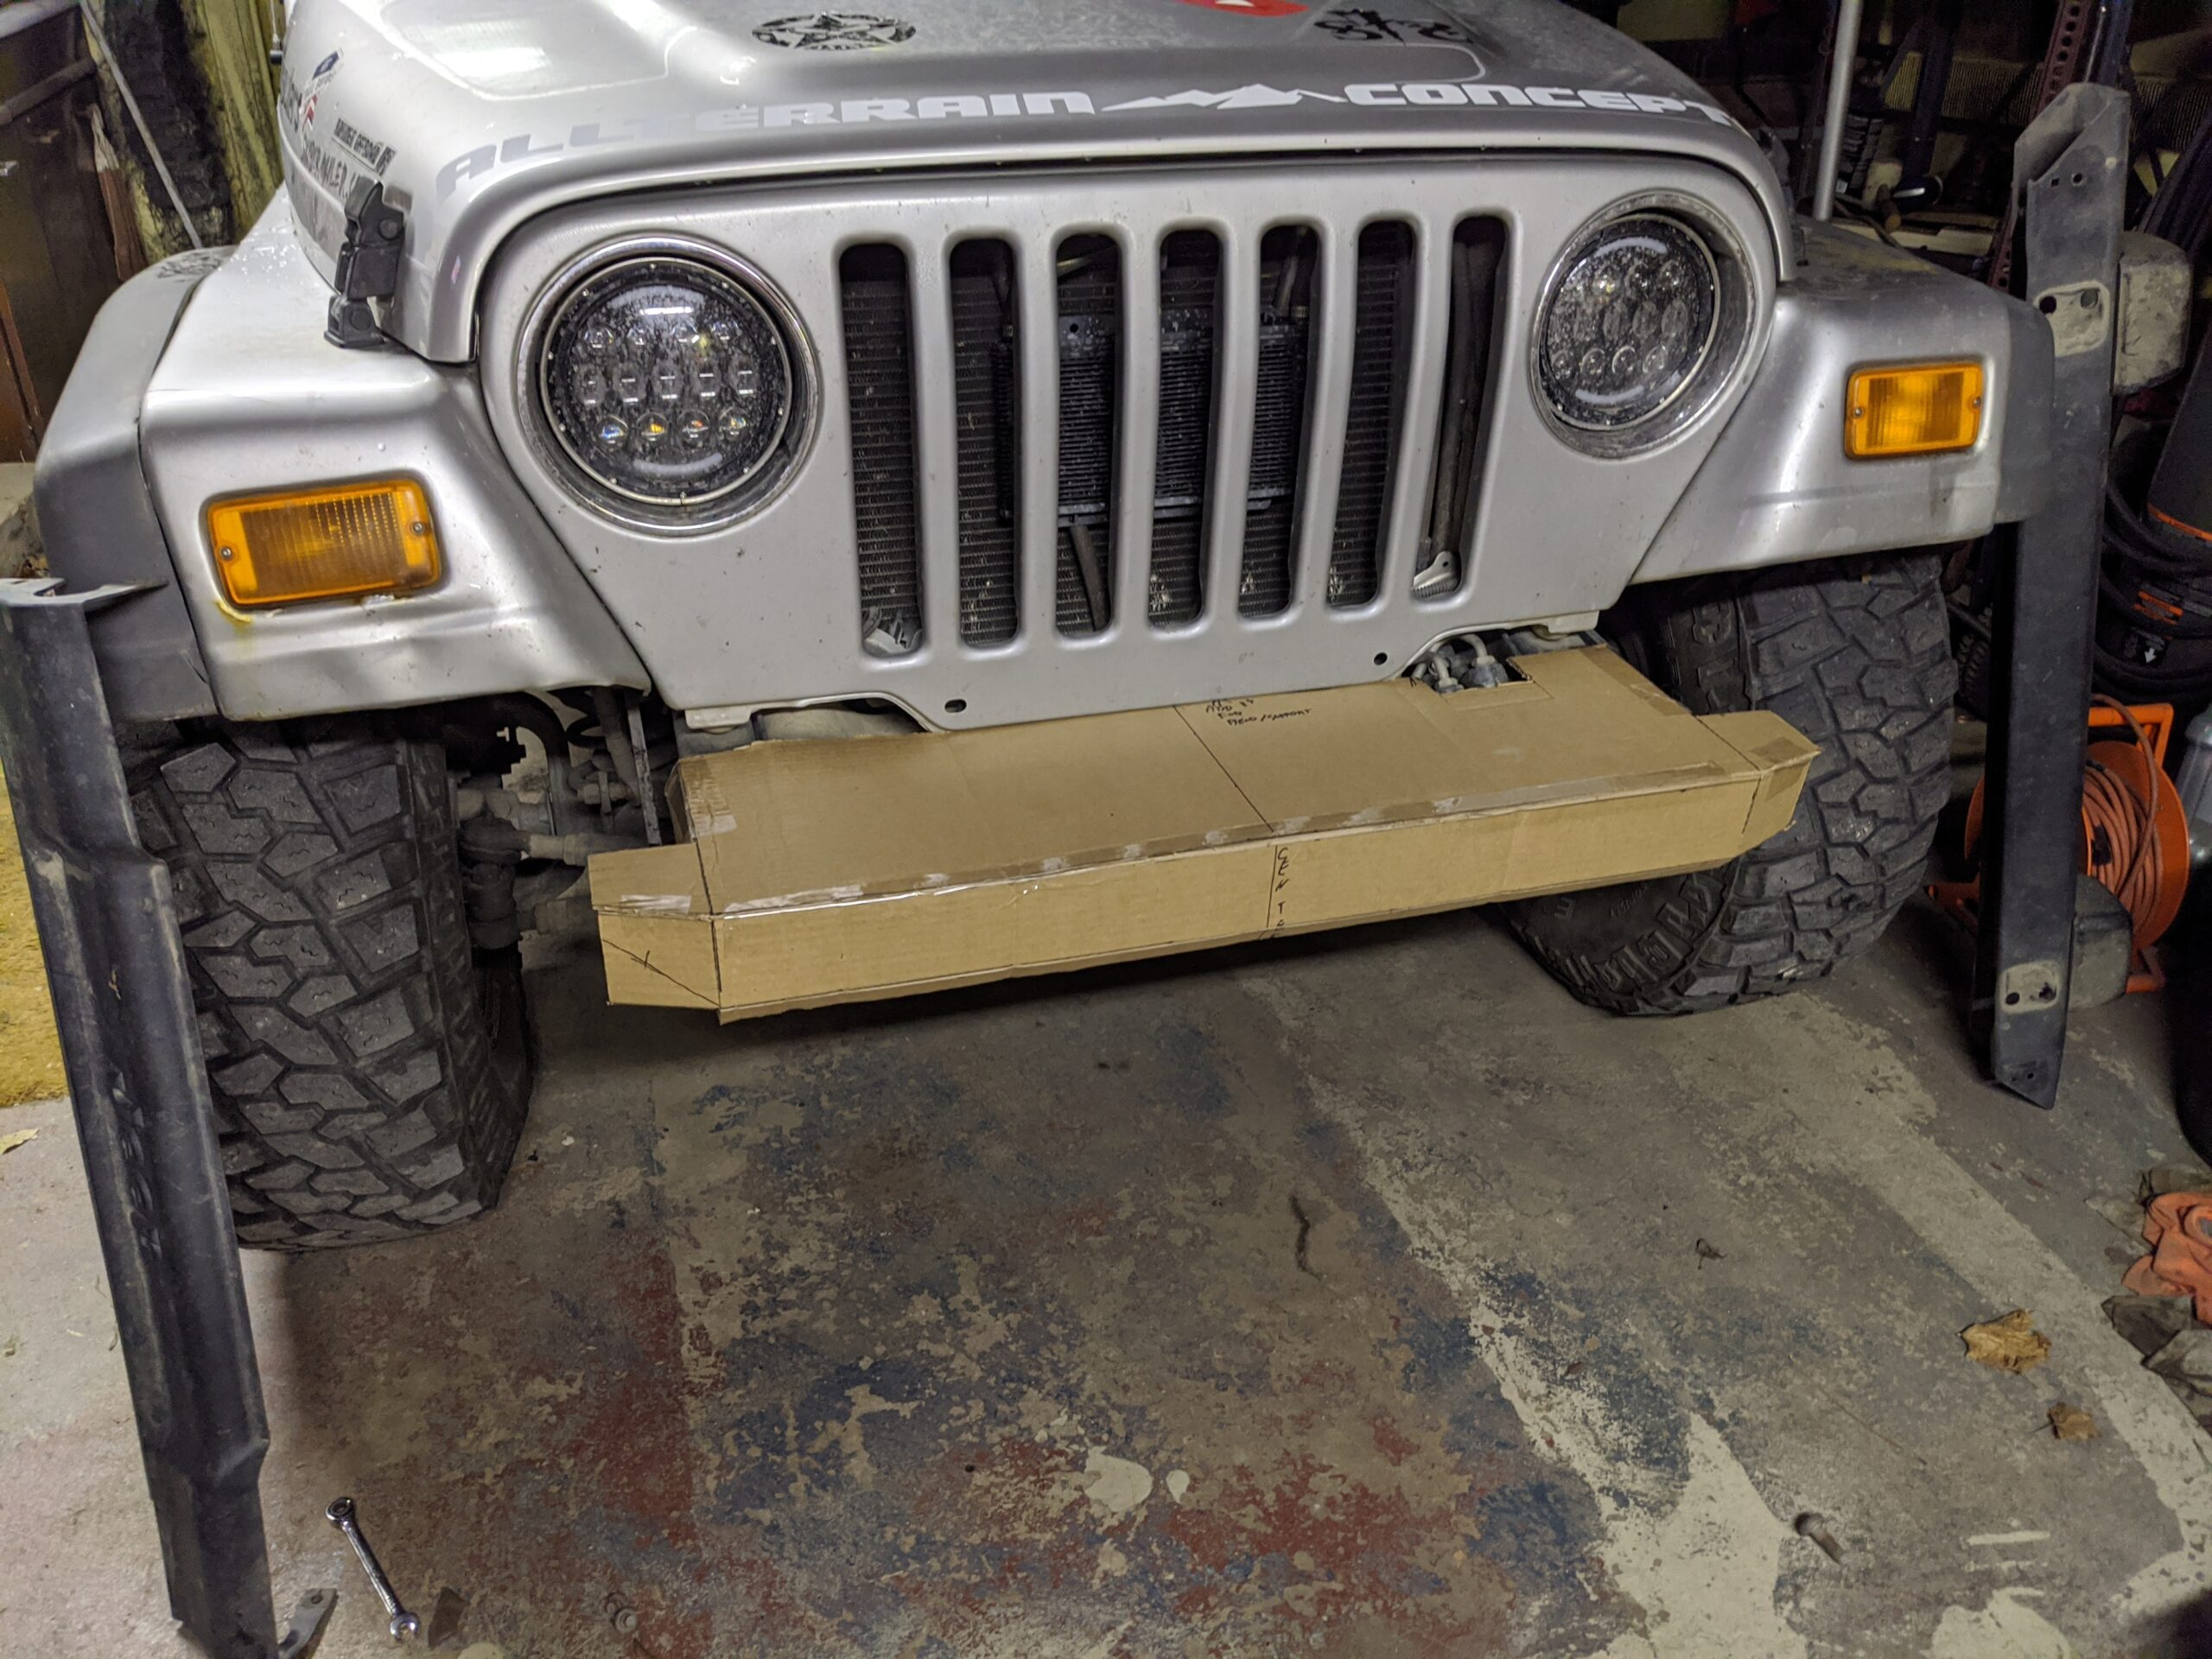 Bumper Fabrication Episode 1: Cardboard Aided Design